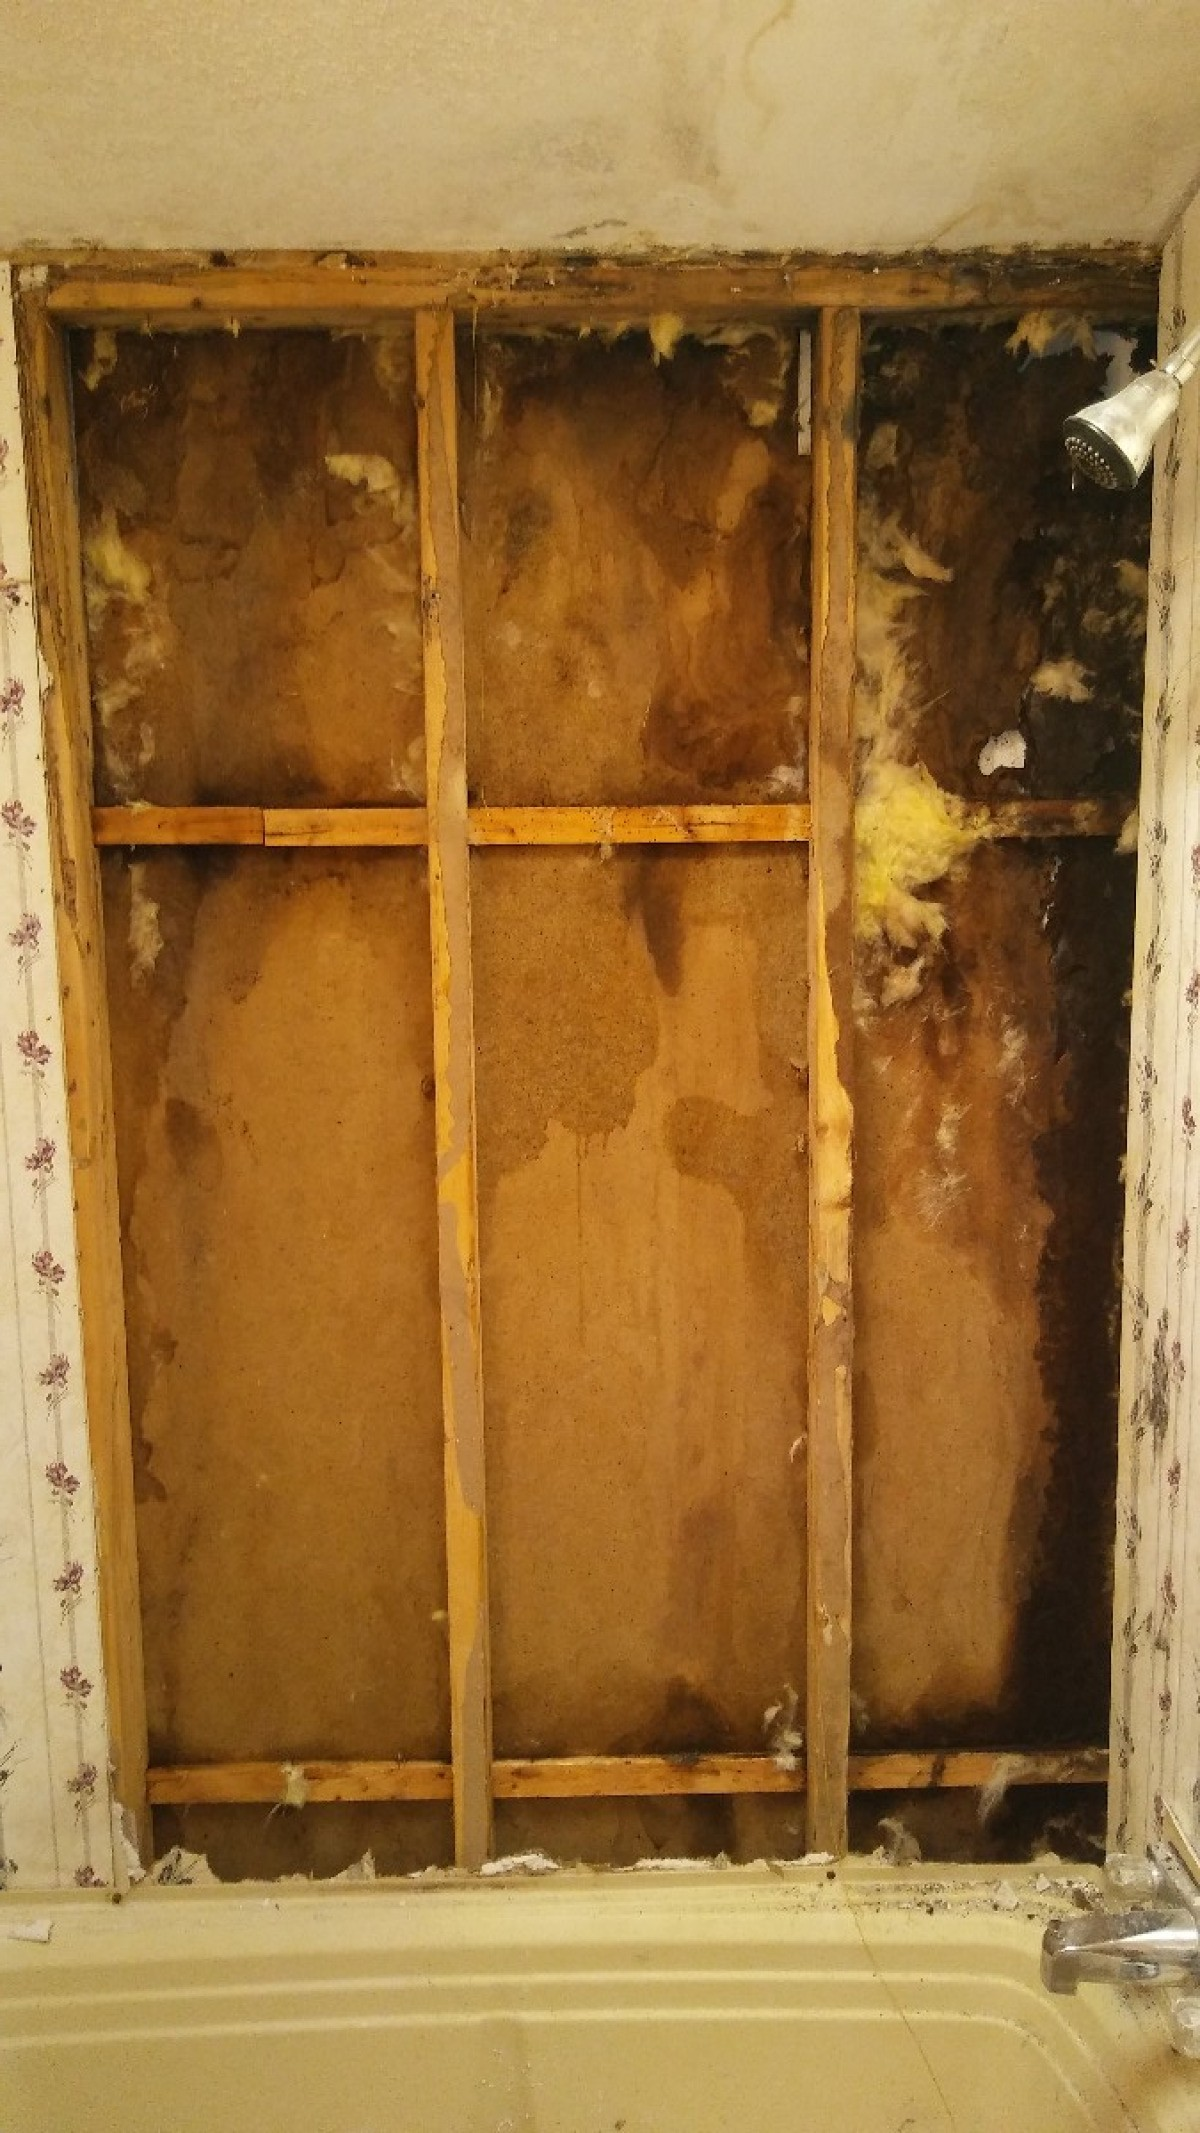 Financial Help To Remove Black Mold And Repair Walls